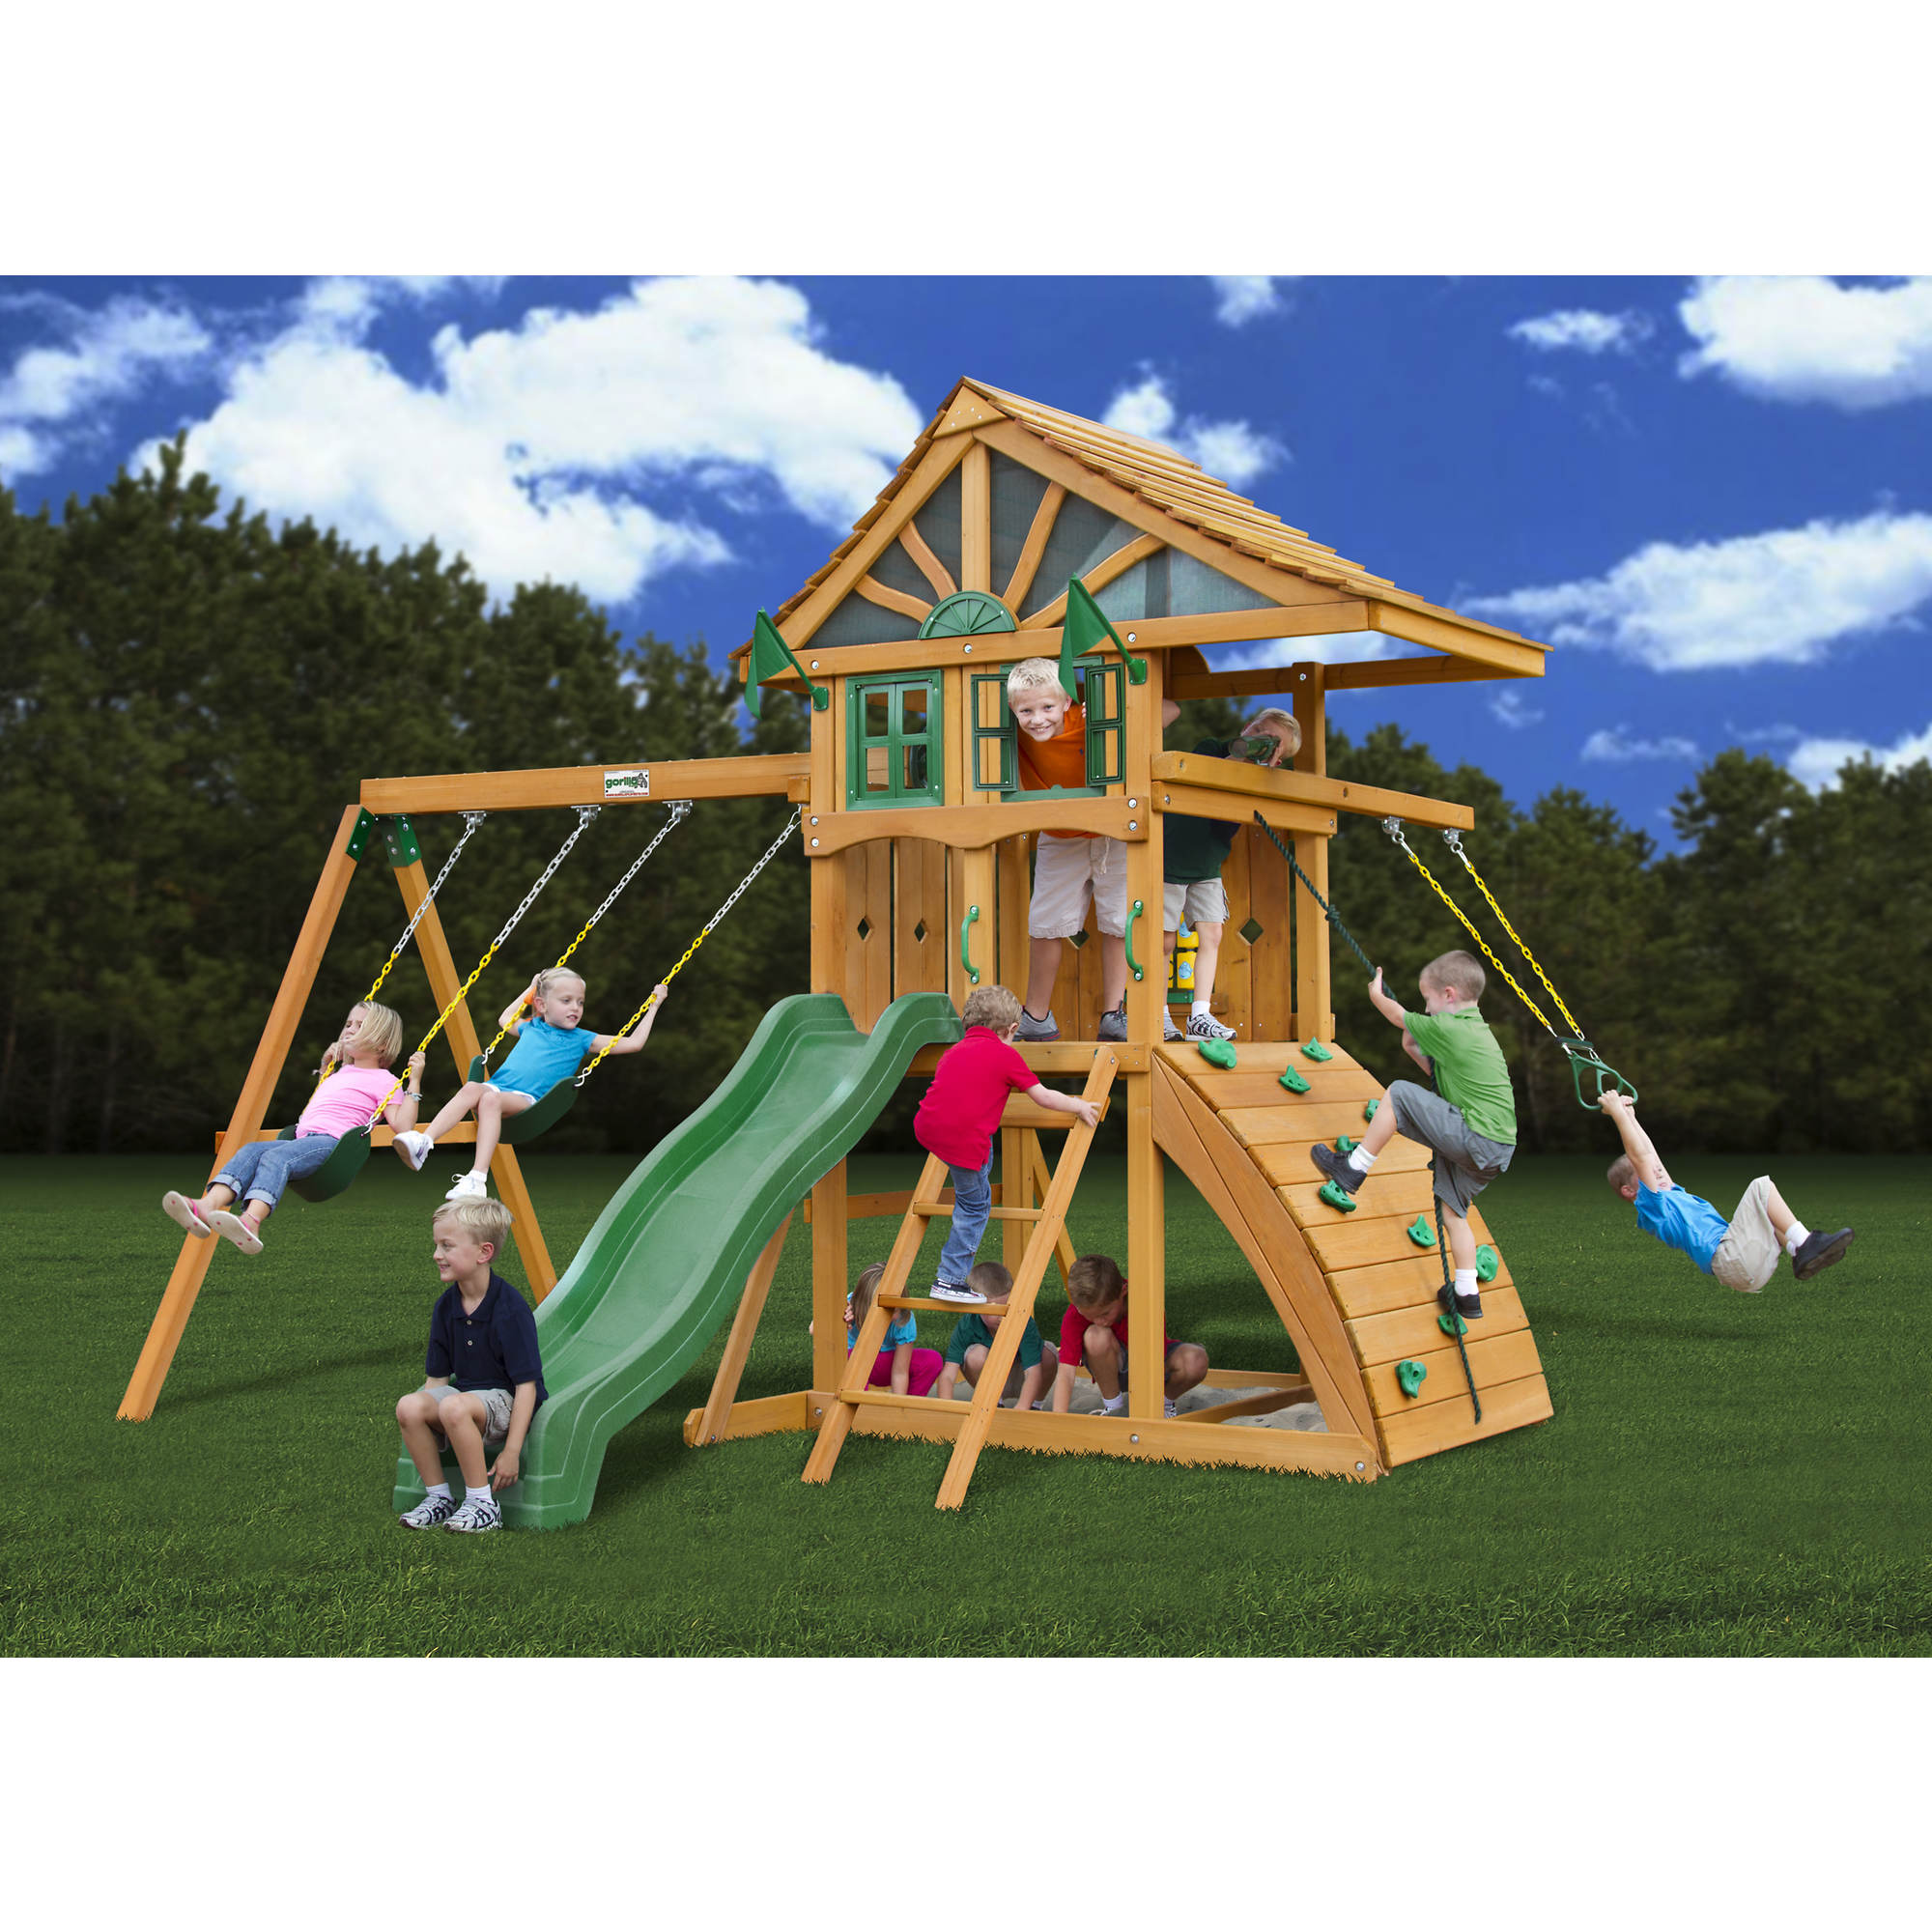 set playsets outdoor for appealing wooden kids swings playset playground furniture sets with frontier captivating play ideas treehouse swing tire cedar costco plans gorilla